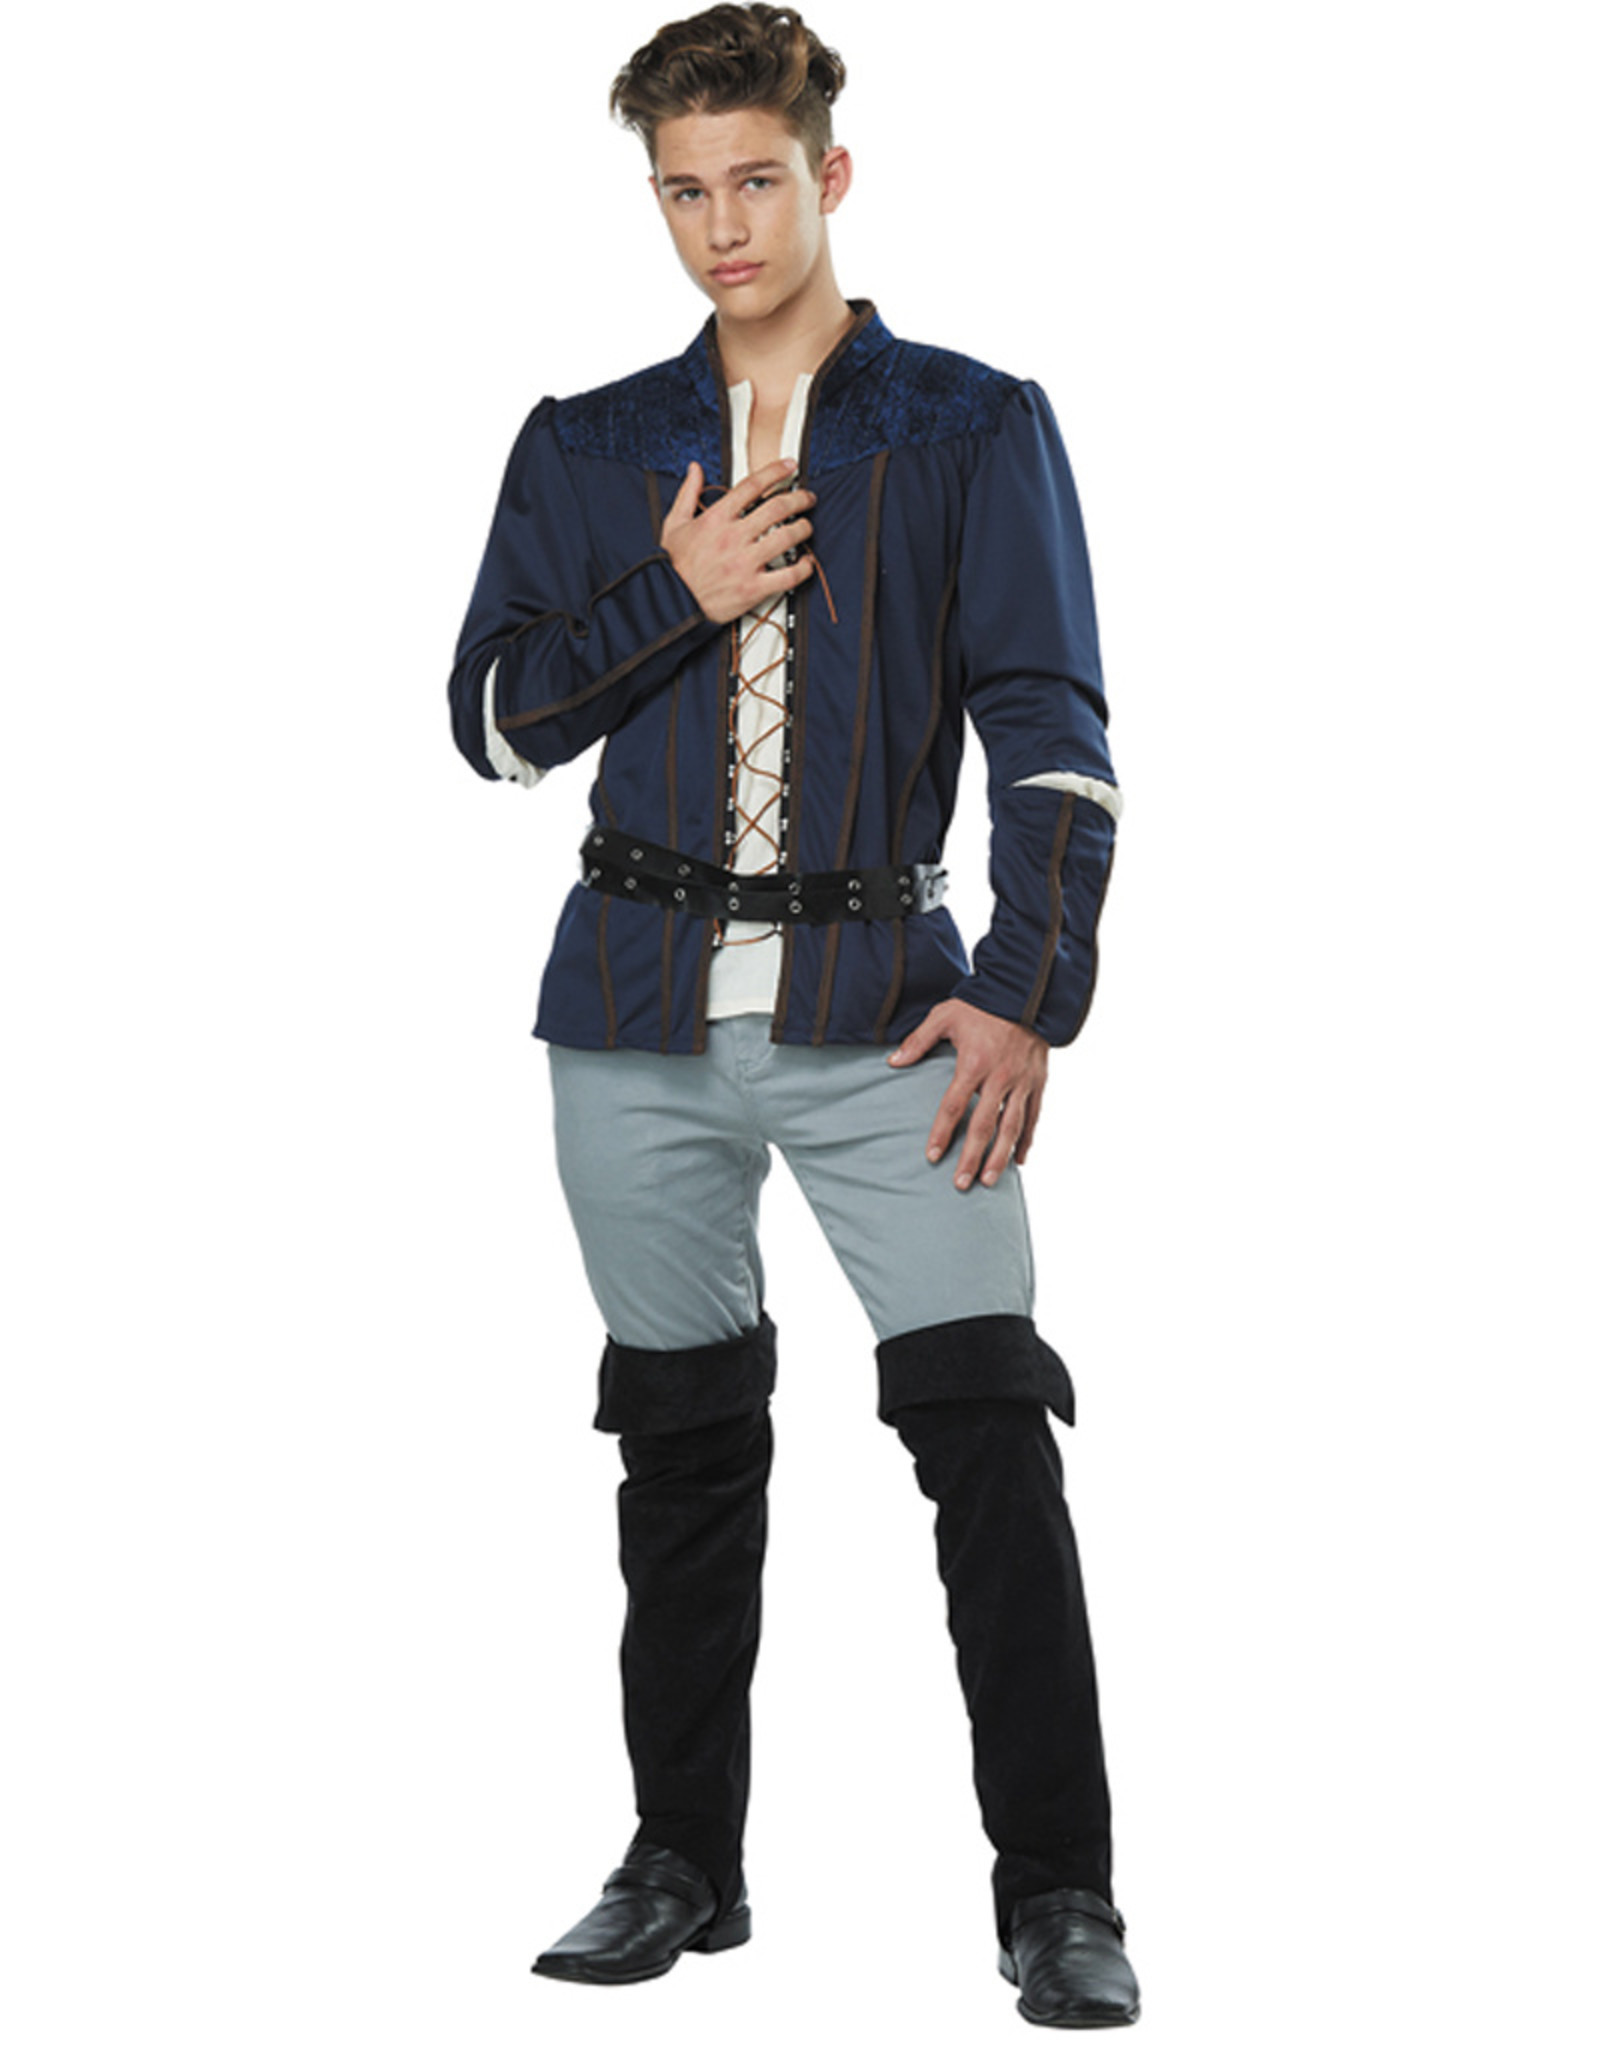 Romeo Costume - Men's